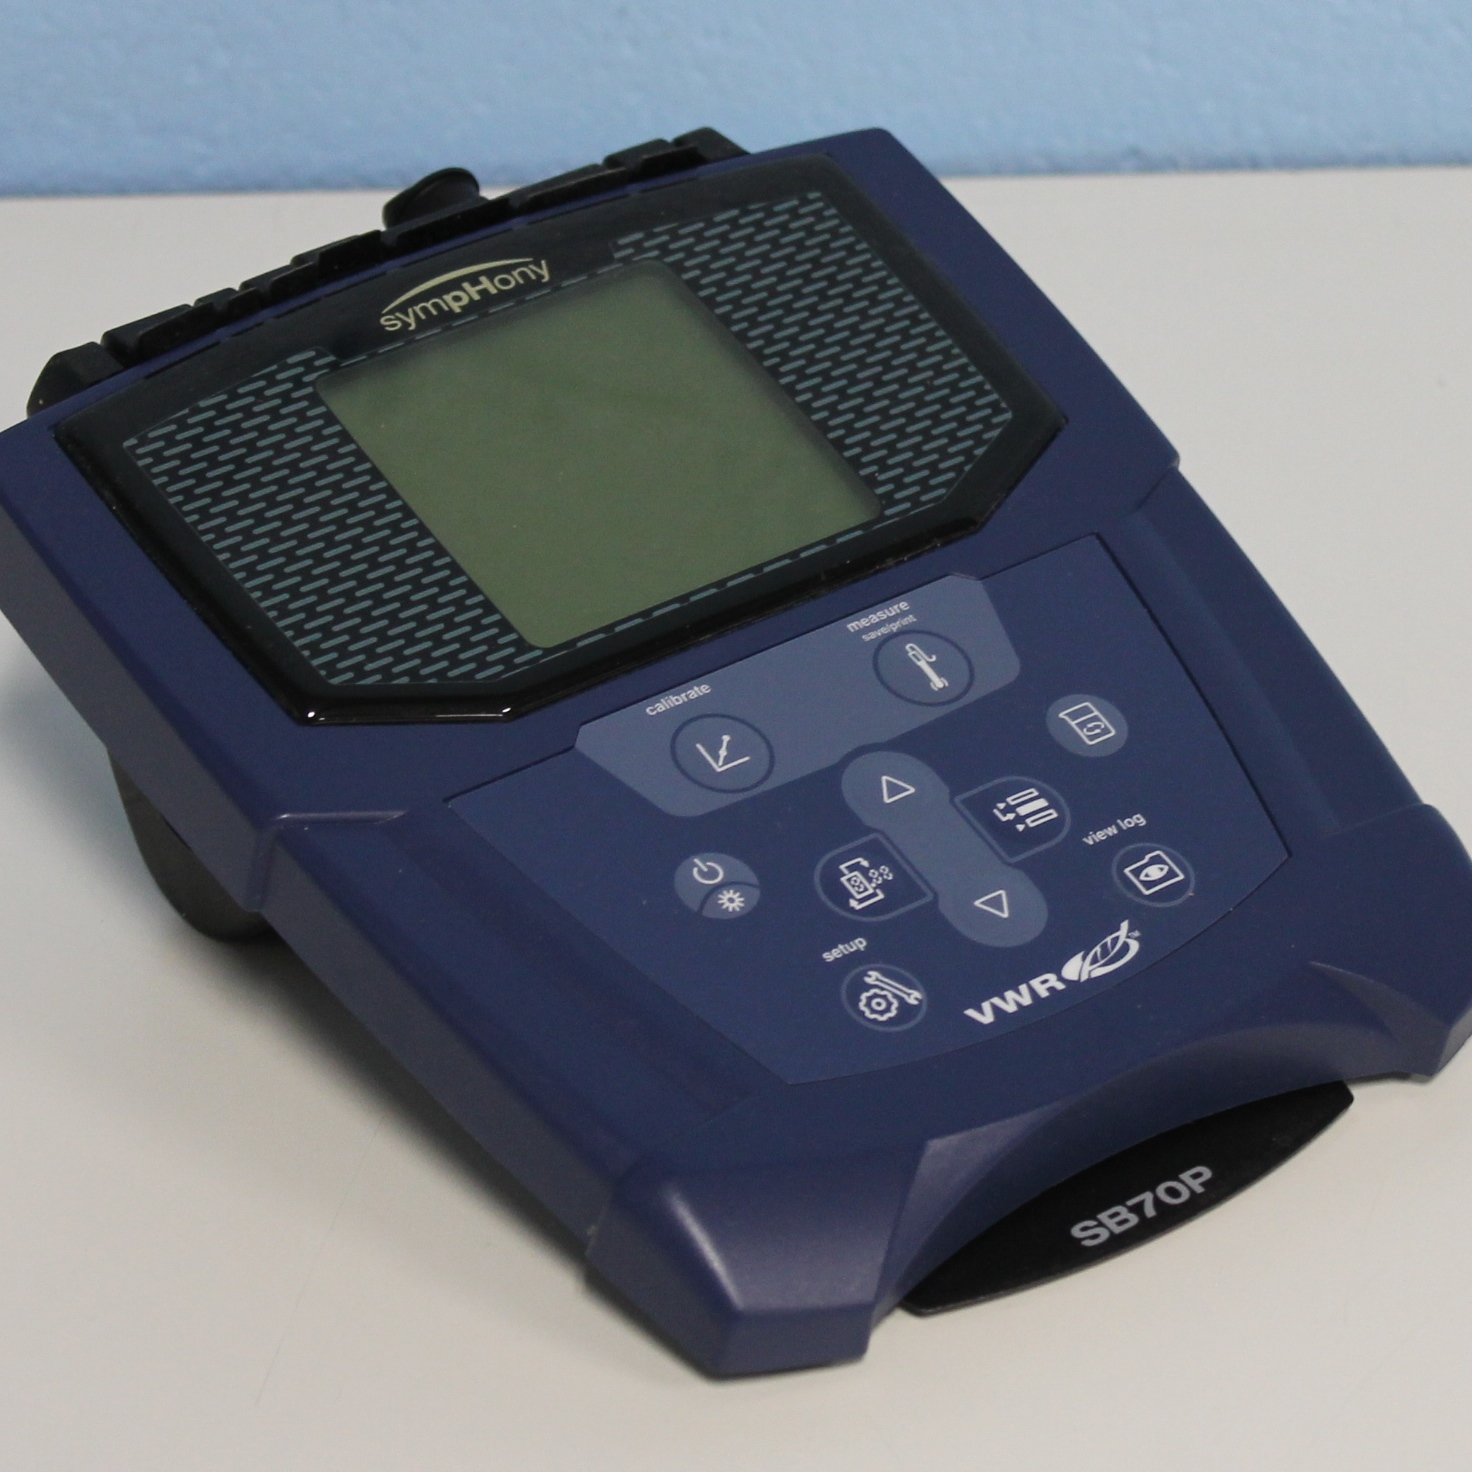 Vwr Symphony ph meter manual